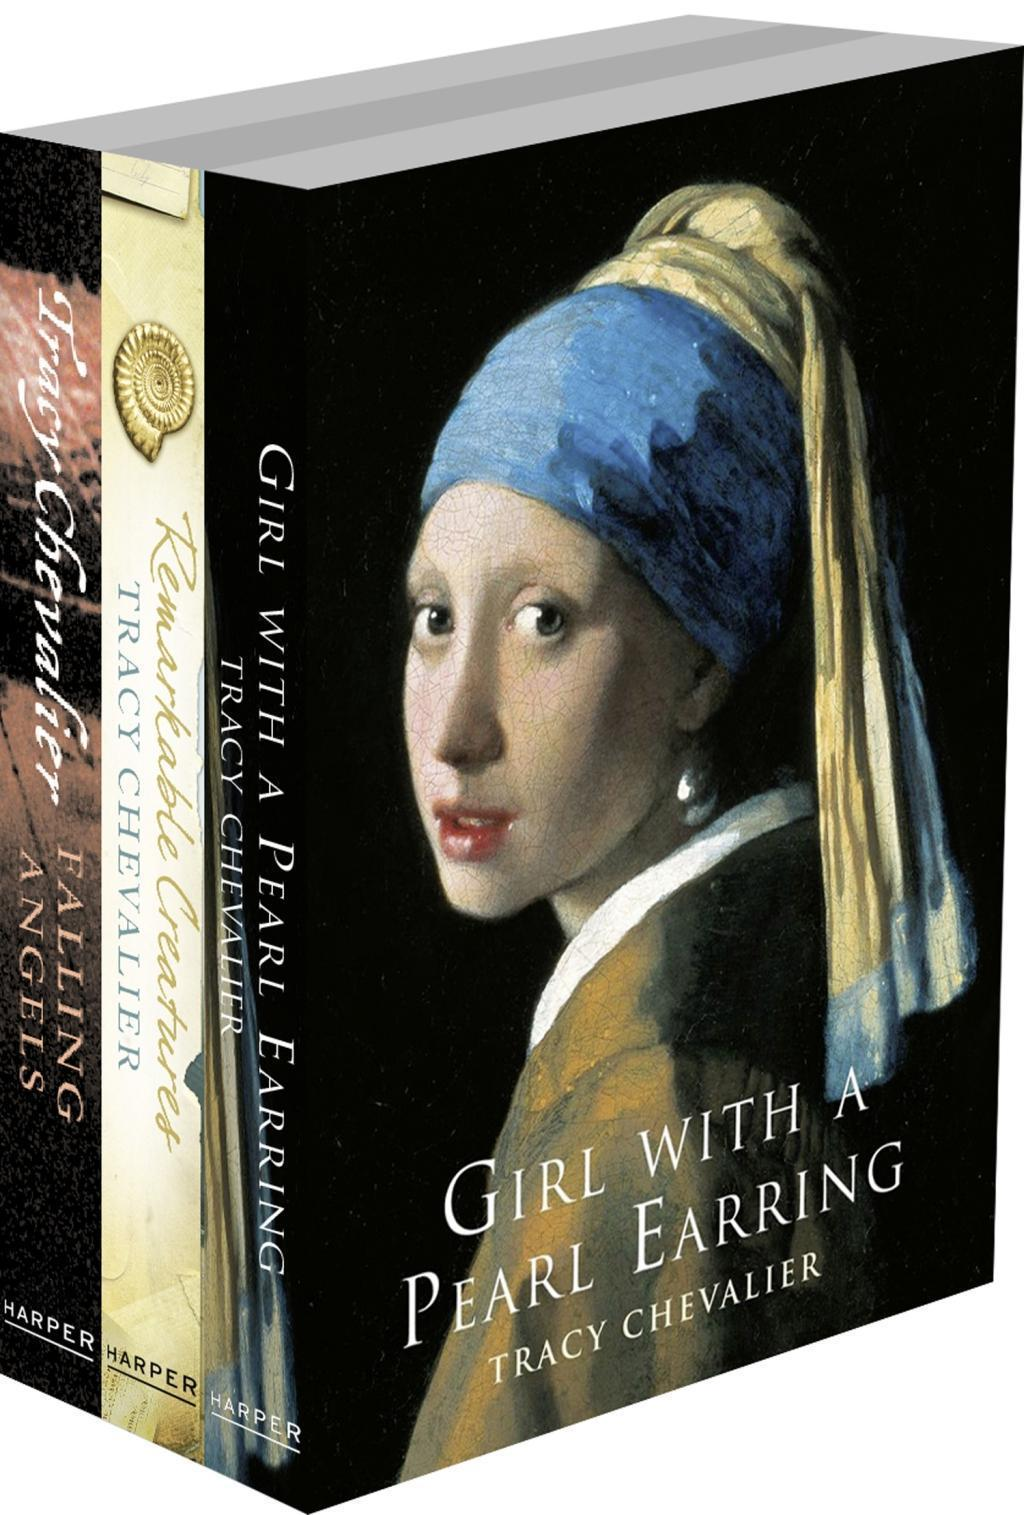 Tracy Chevalier 3-Book Collection: Girl With a Pearl Earring, Remarkable Creatures, Falling Angels